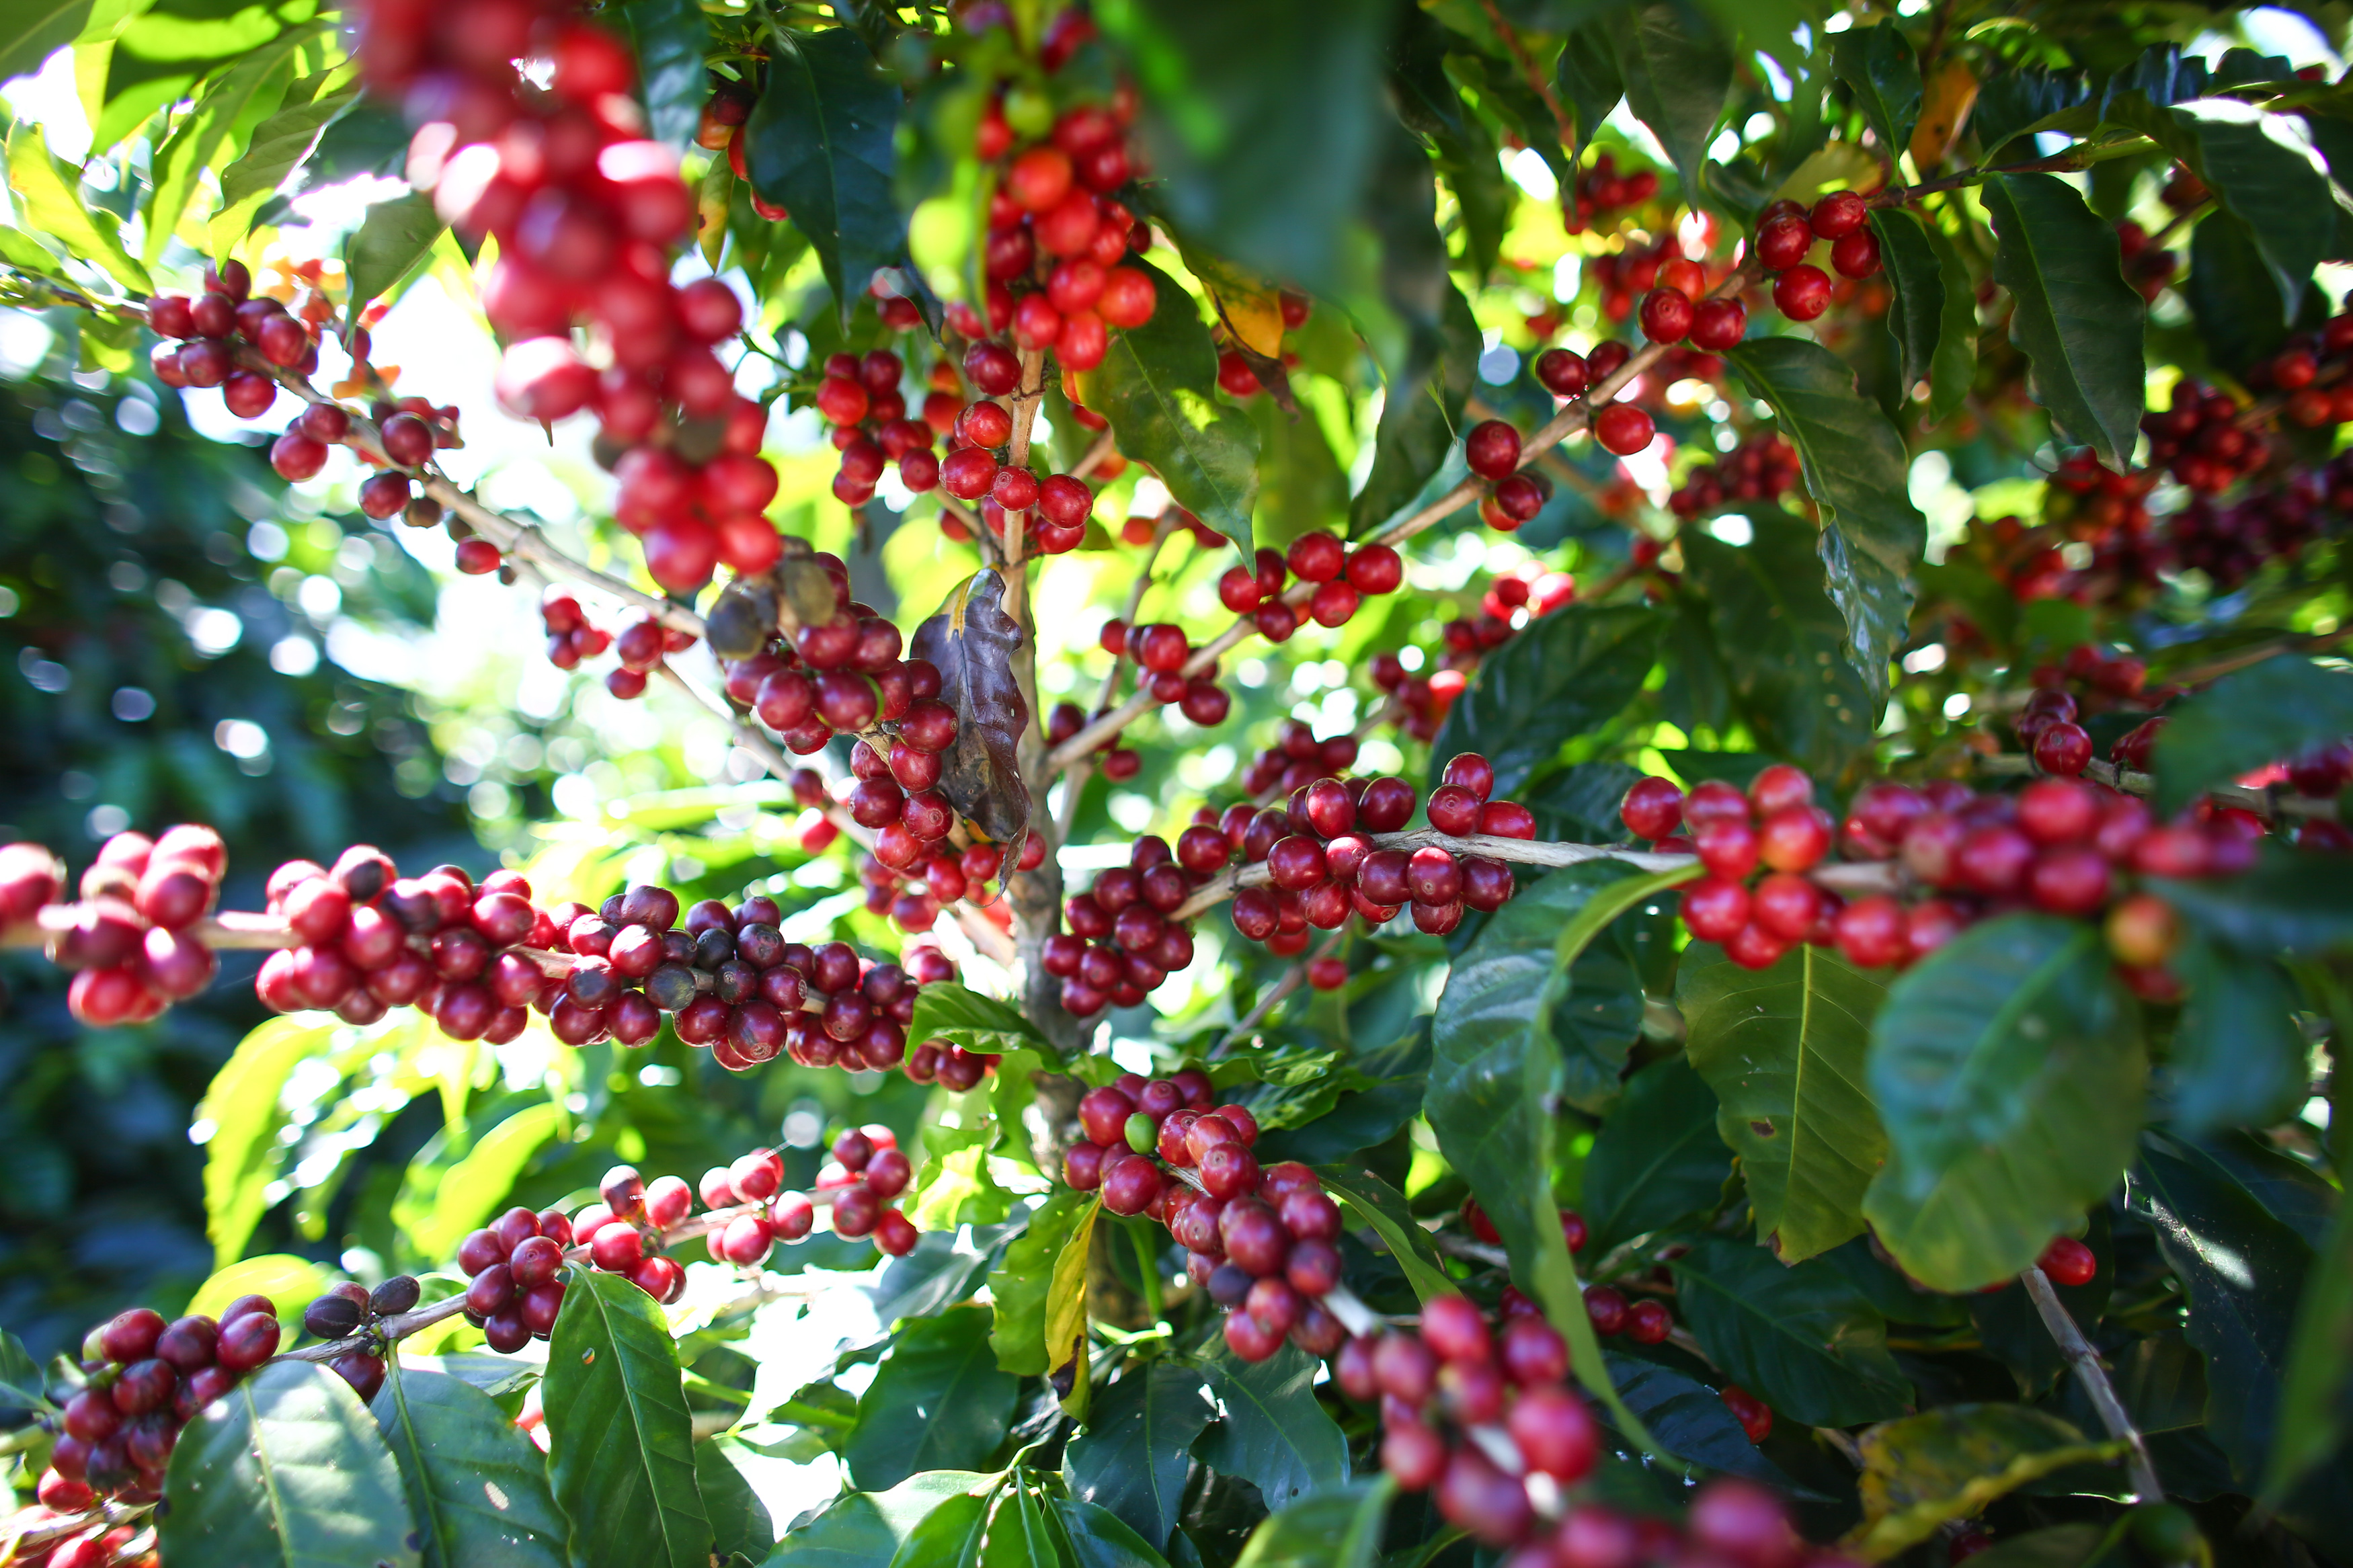 starbucks-coffee-cherries_1